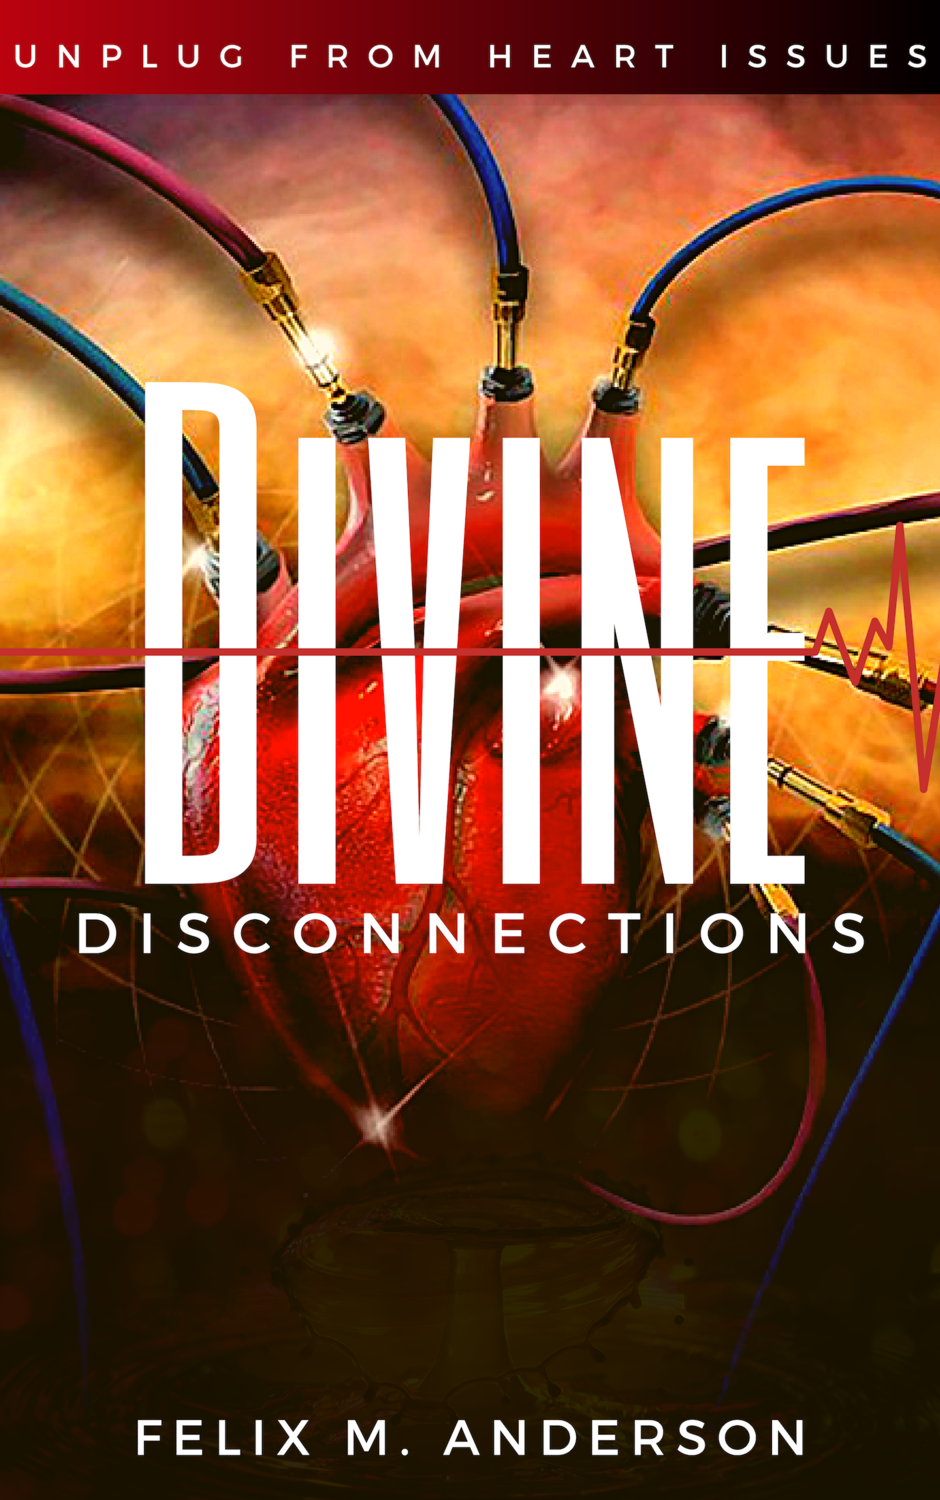 DIVINE DISCONNECTIONS